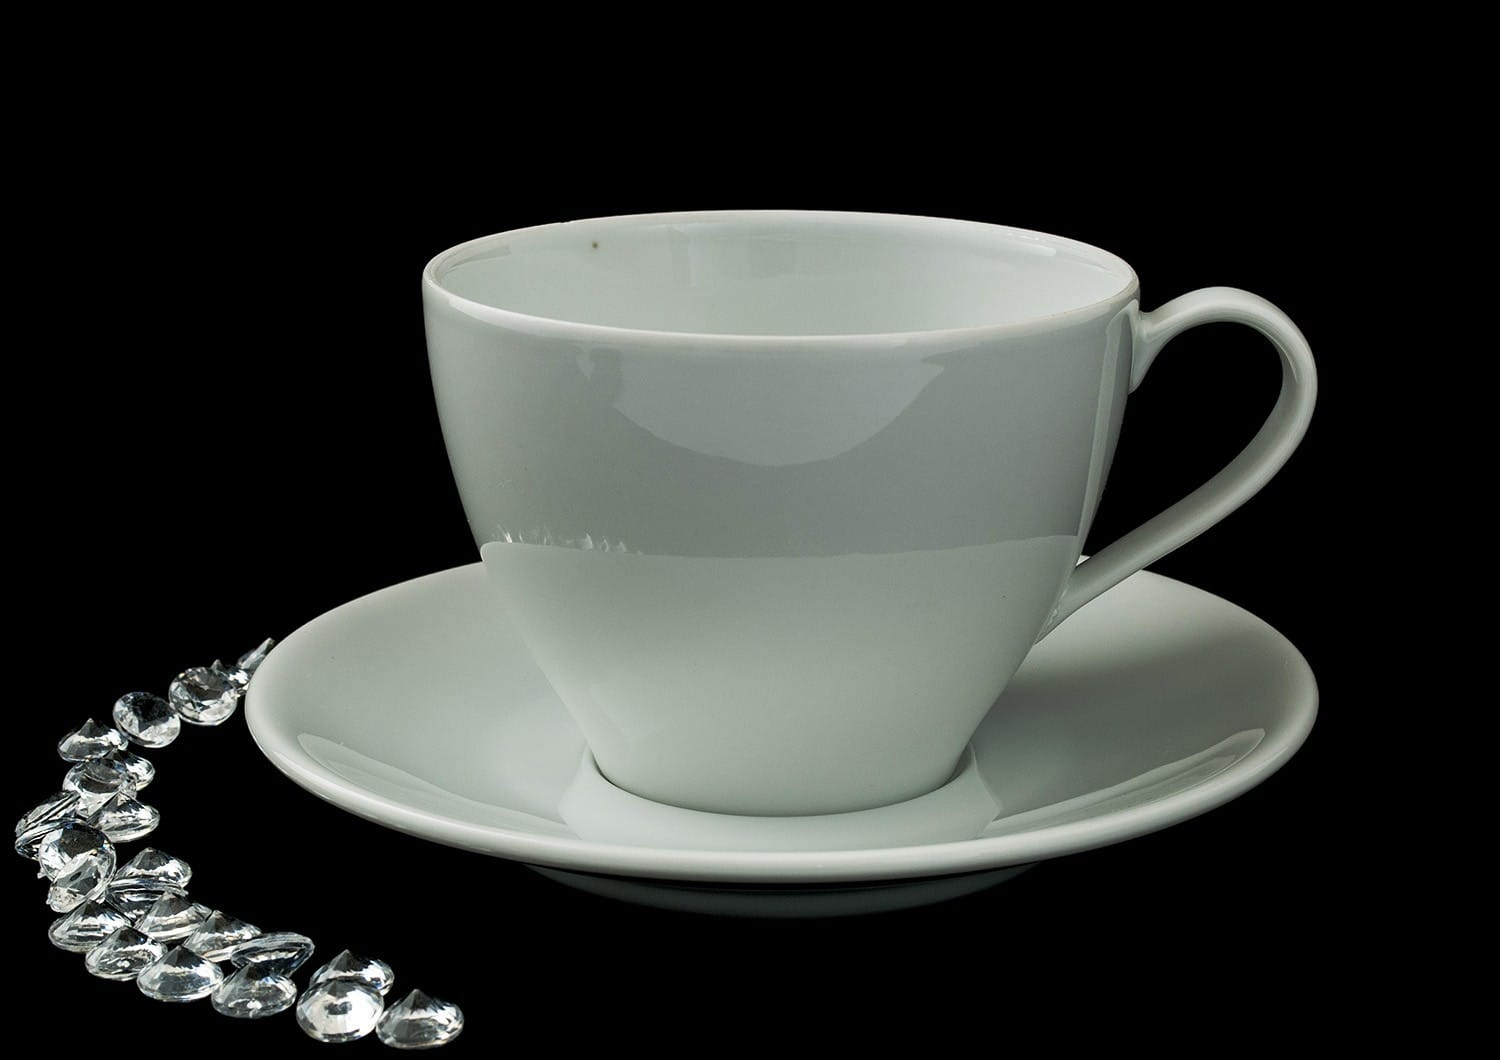 Volare design Mug with saucer. White collection.